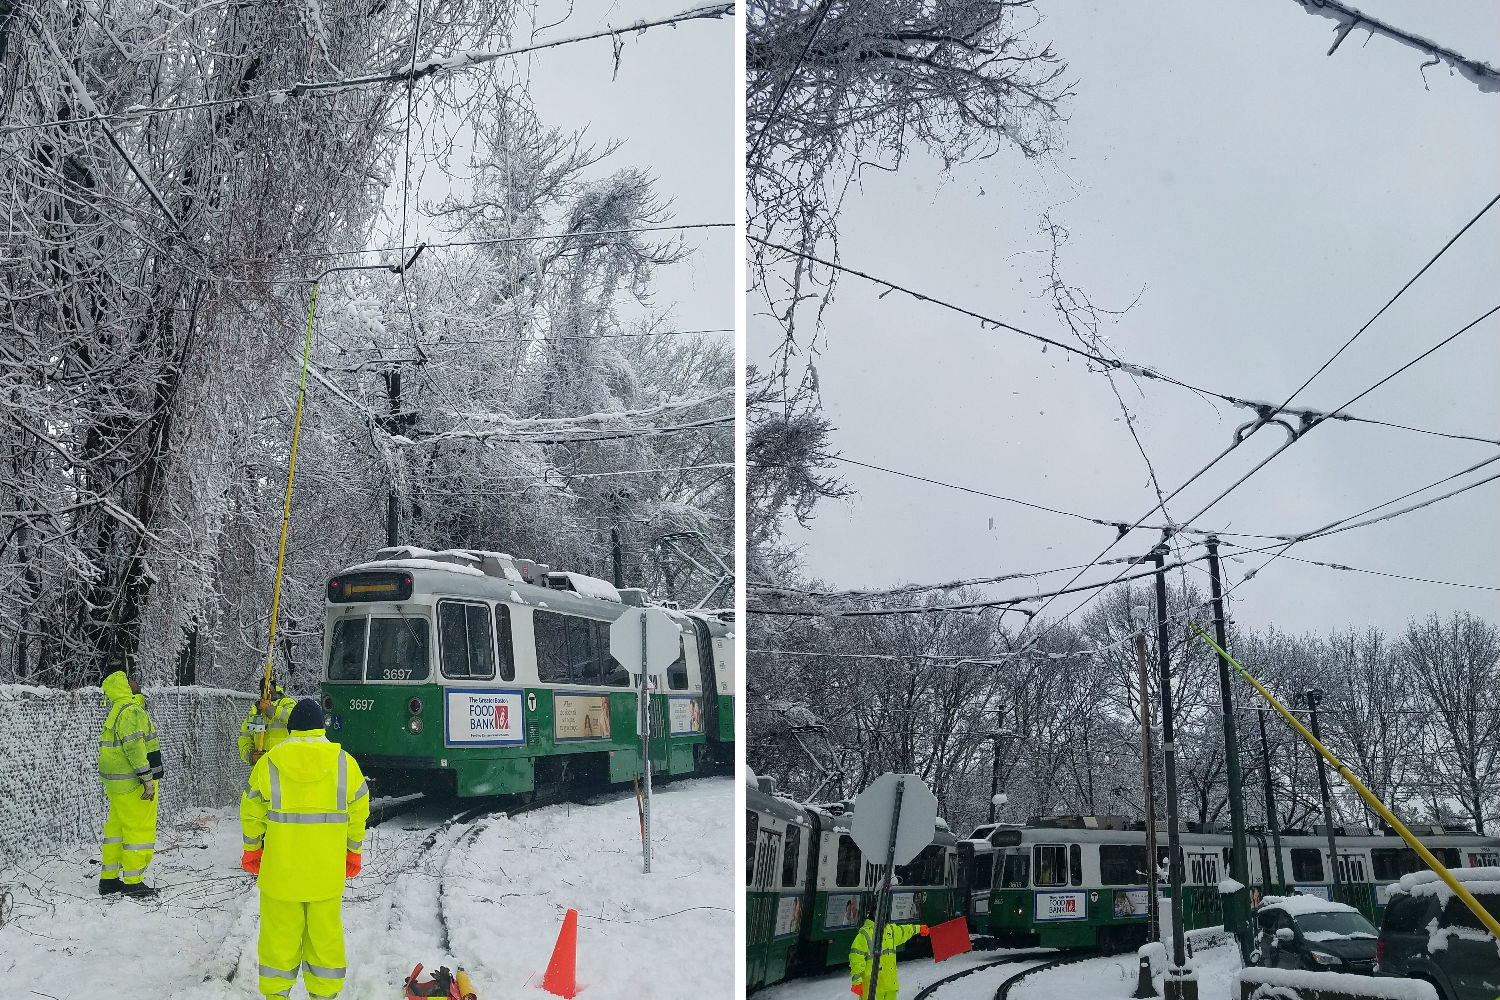 On the left, a crew uses a long pole to dislodge the fallen tree over the Green Line D branch tracks, with a train nearby. On the right, a photo of the overhead wires, now clear of the tree.